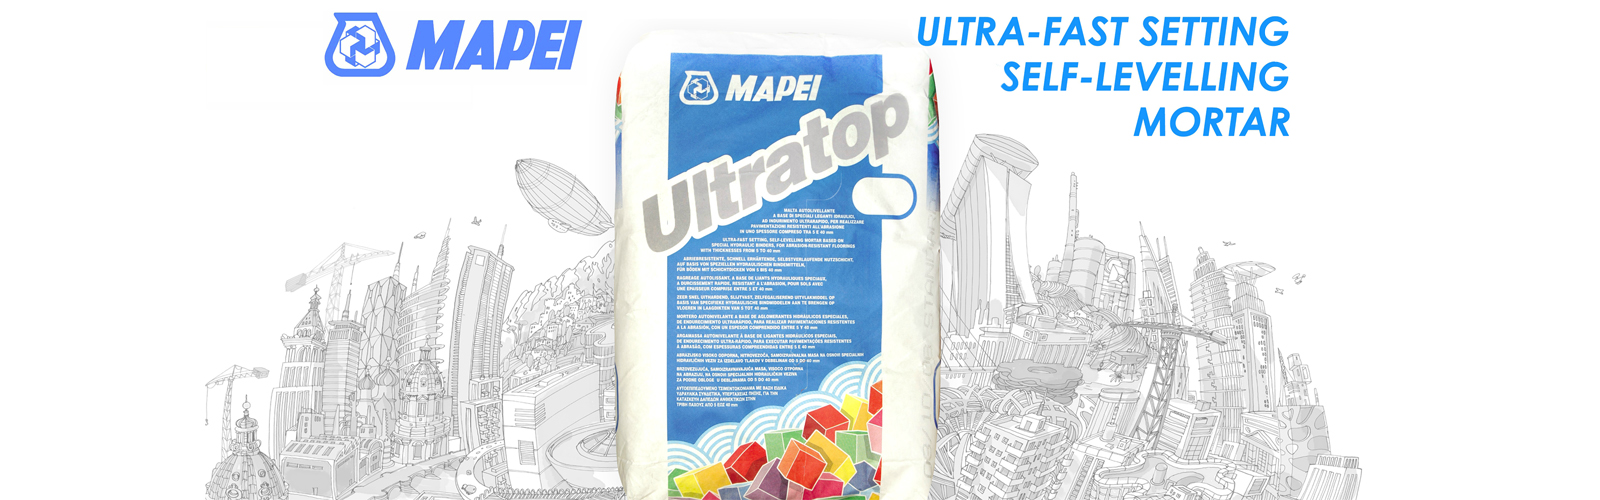 Slider-Mapei-Ultratop-Mortar